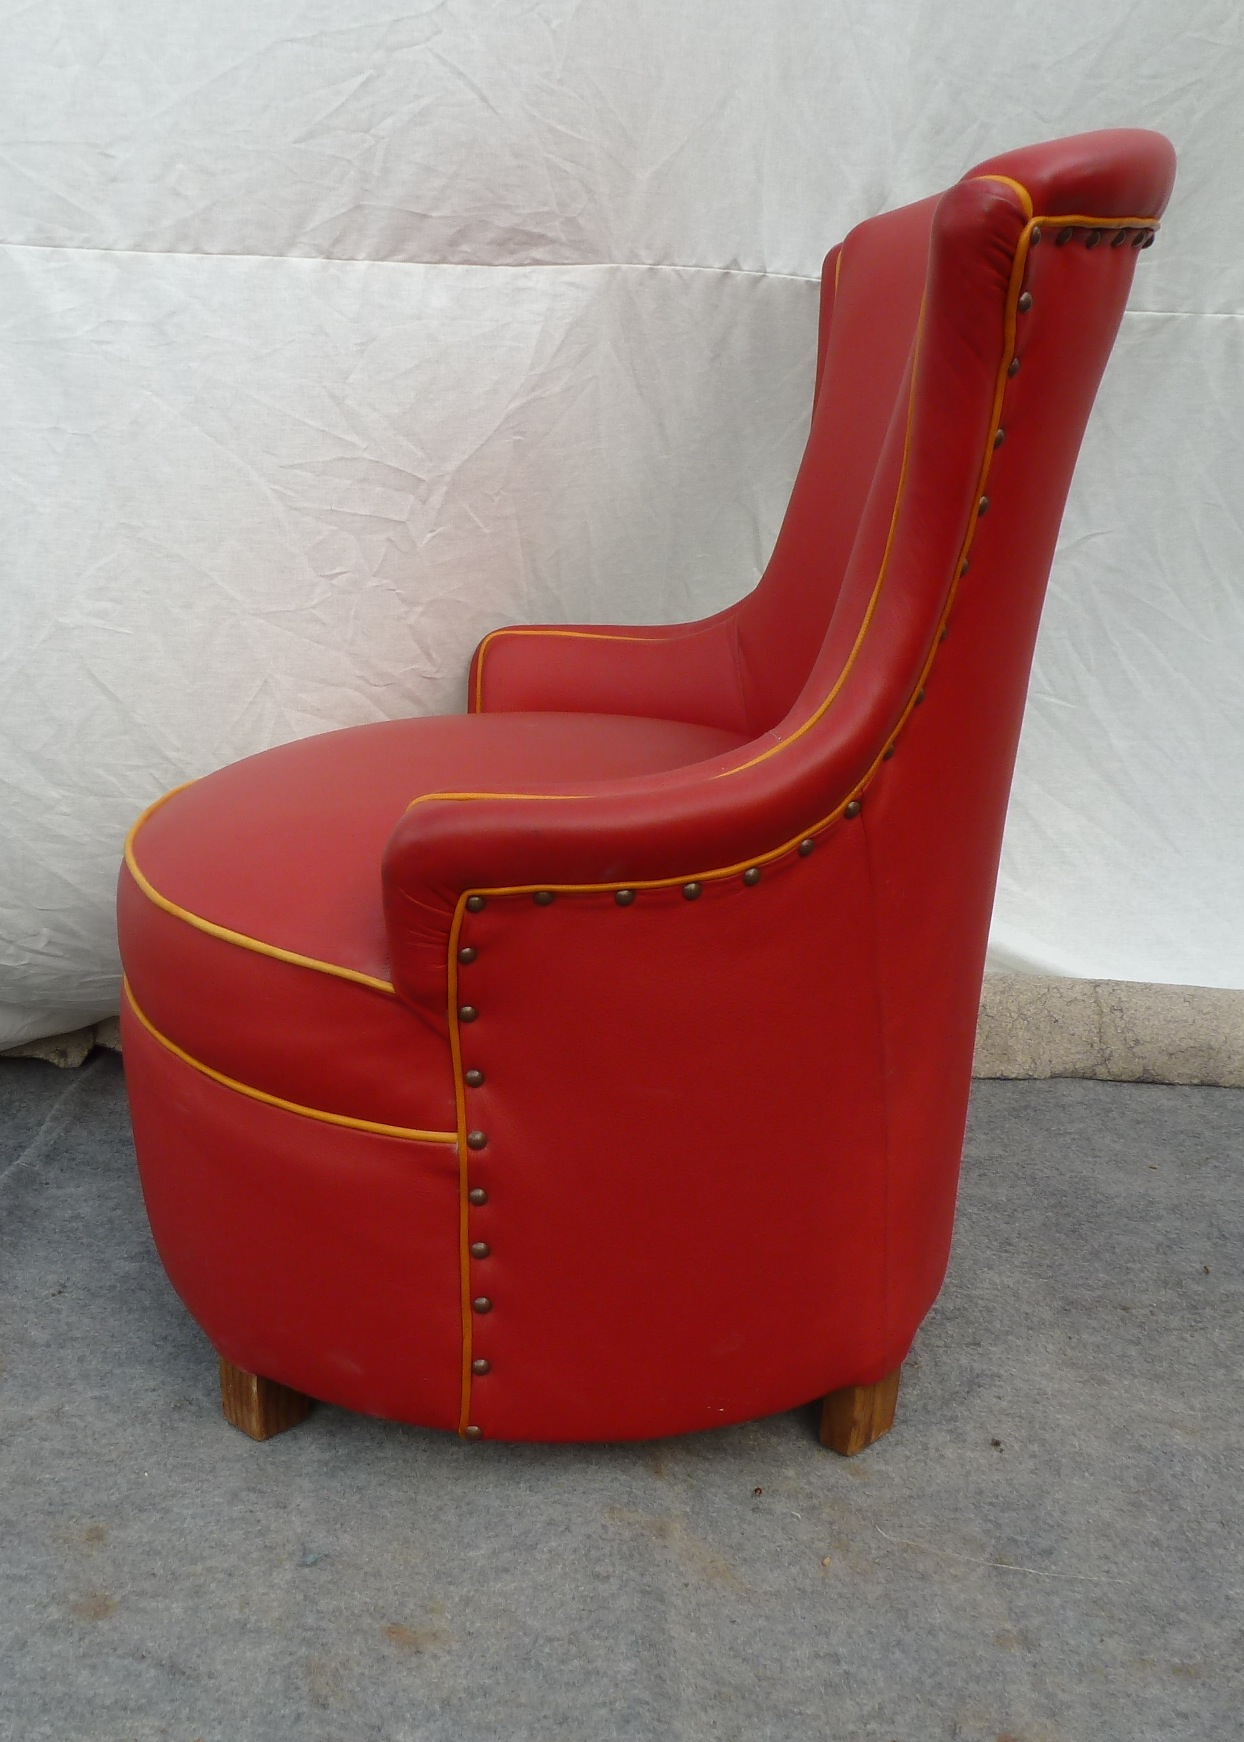 chauffeuse cuir rouge madebymed fauteuil club. Black Bedroom Furniture Sets. Home Design Ideas